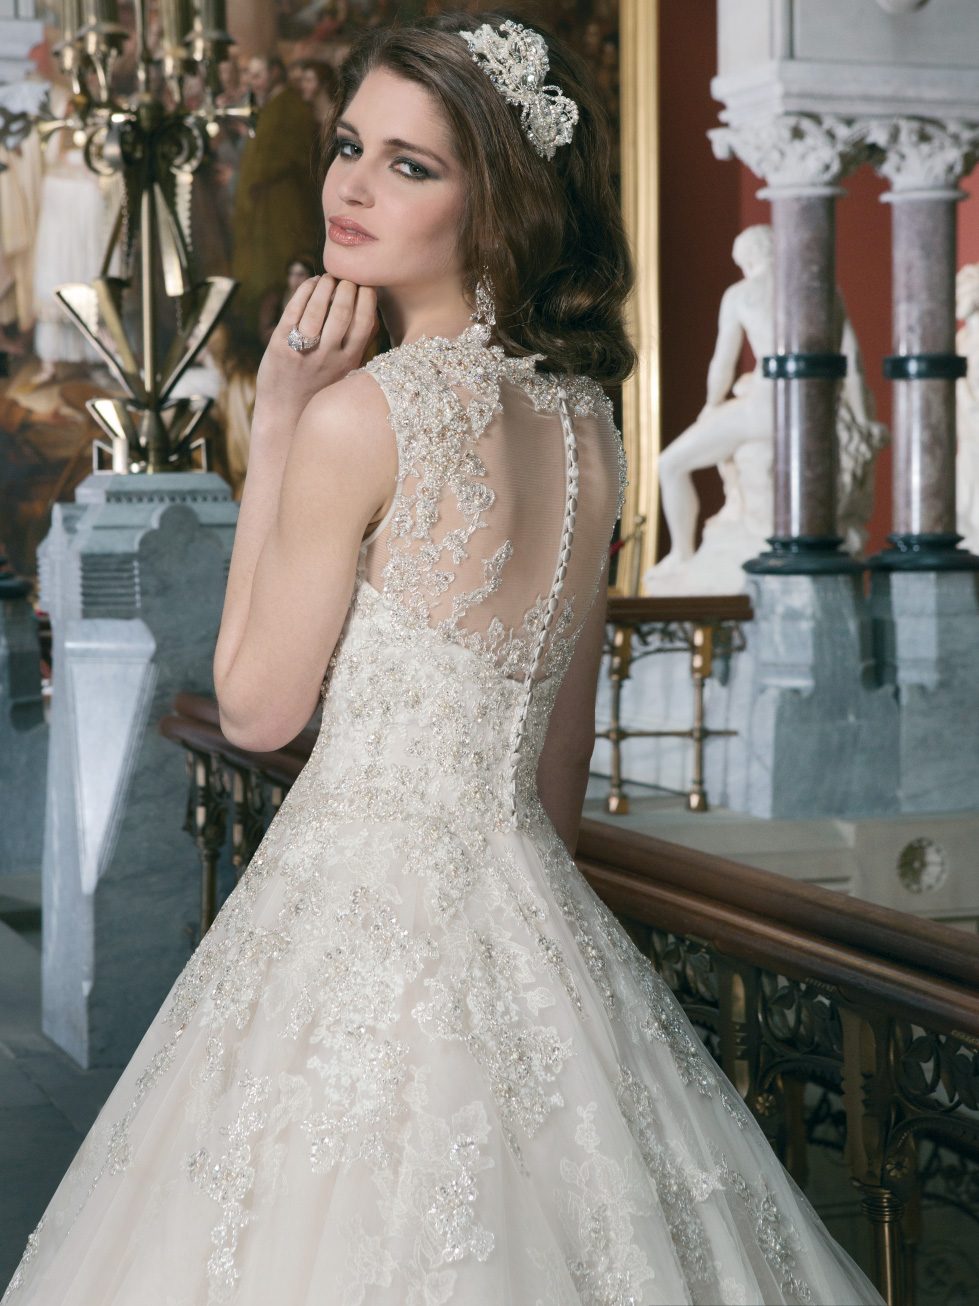 Unforgettable Embroidered Bodice Bridal Gown By Justin Alexander 8726